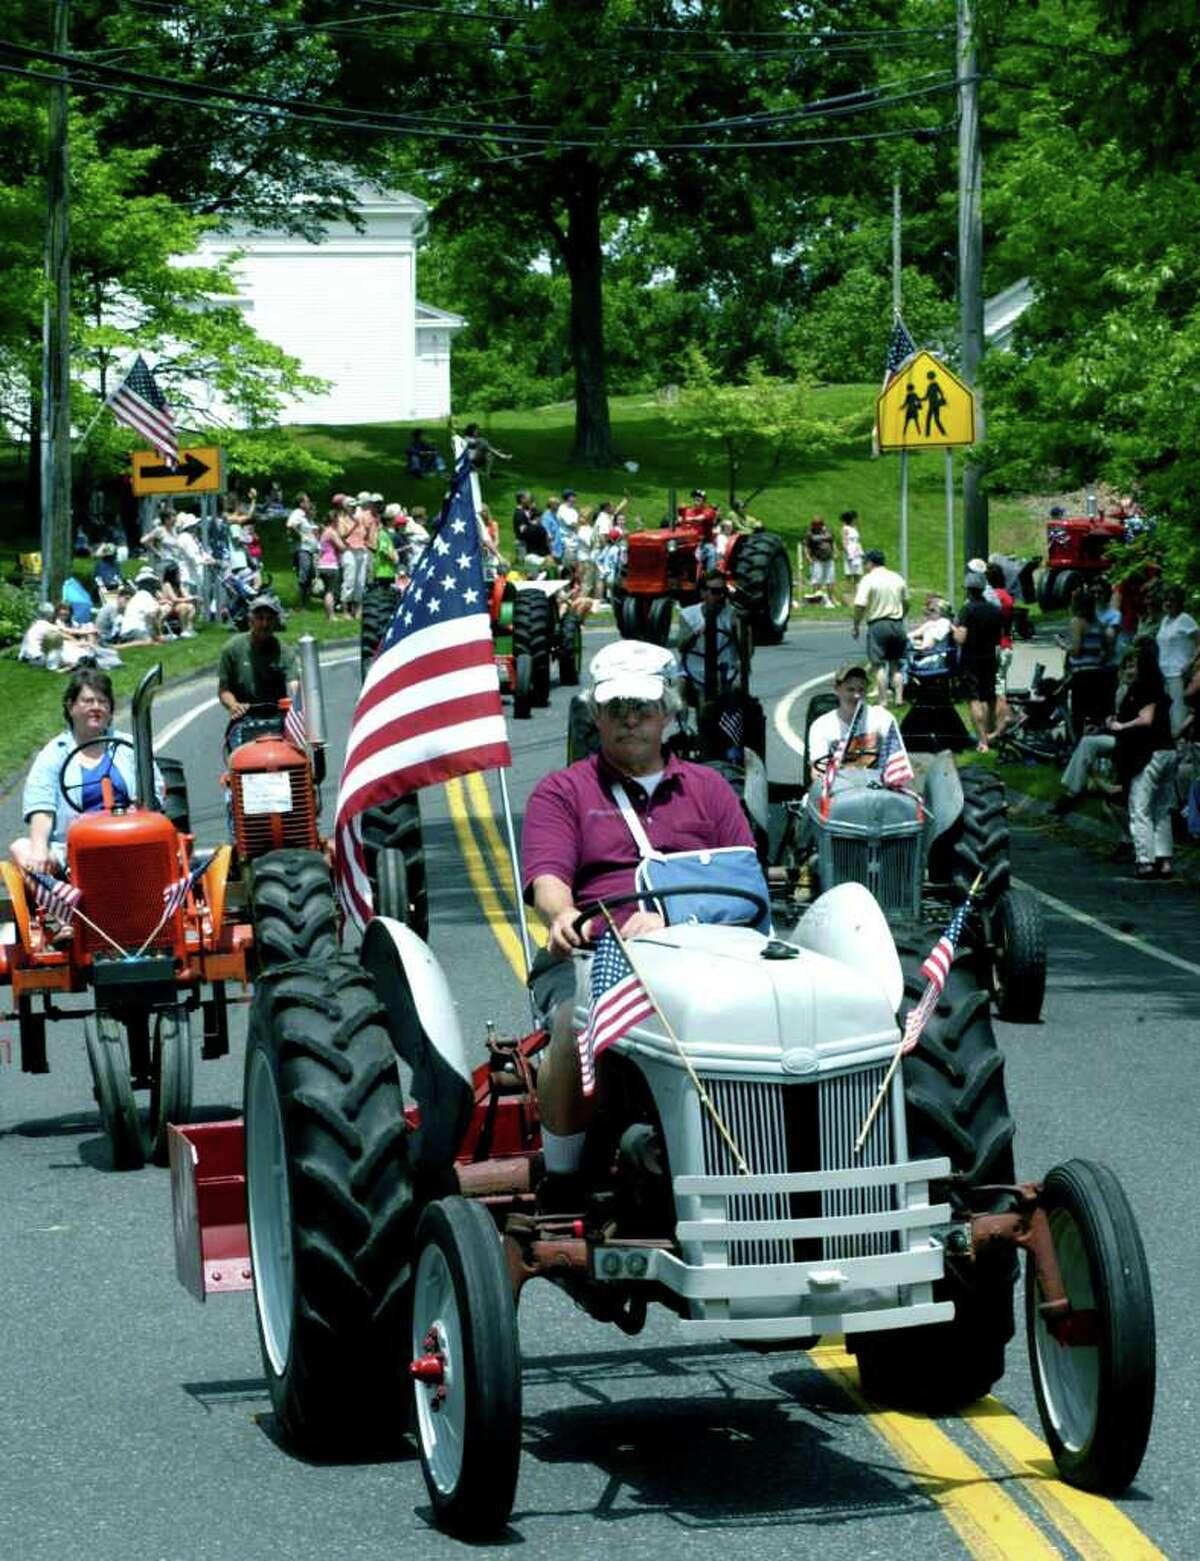 SPECTRUM/Bob Wilbur of New Milford and the Connecticut Antique Machinery Association of Kent guides his 1947 Ford tractor in Sunday's Sherman Memorial Day parade to help the town celebrate its farming heritage. May 29, 2011